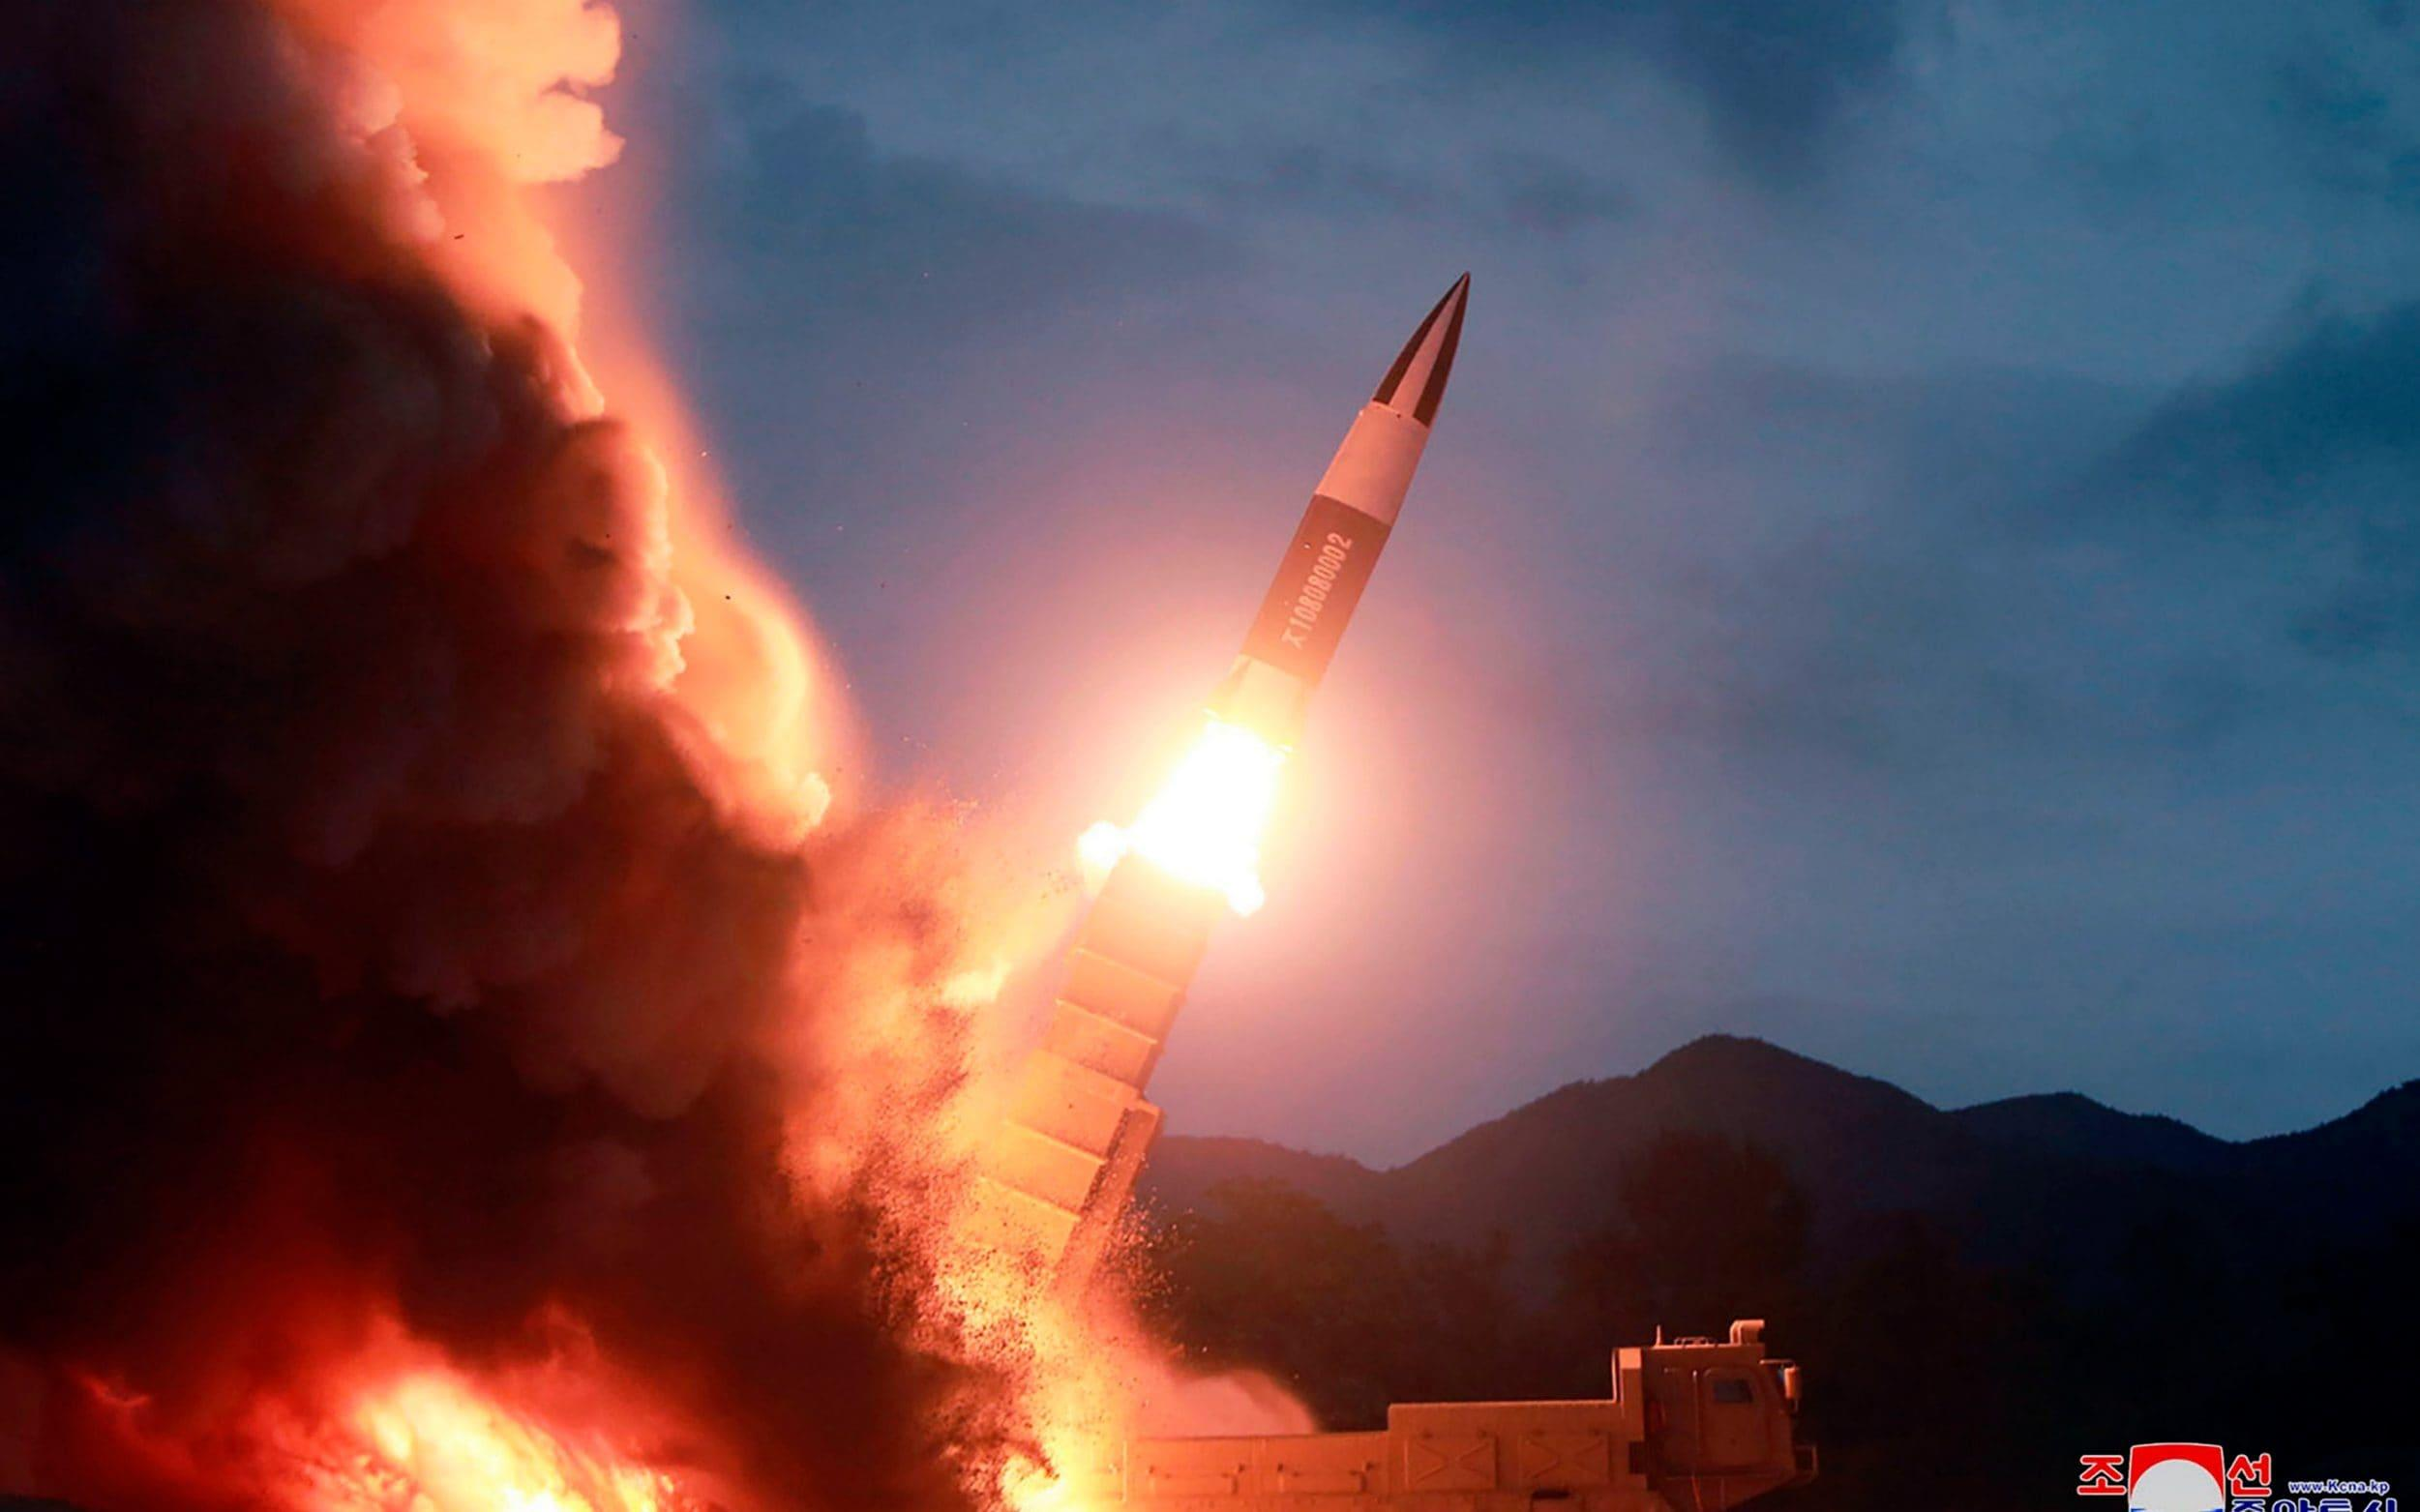 North Korea fires two ballistic missiles in challenge to Biden's administration